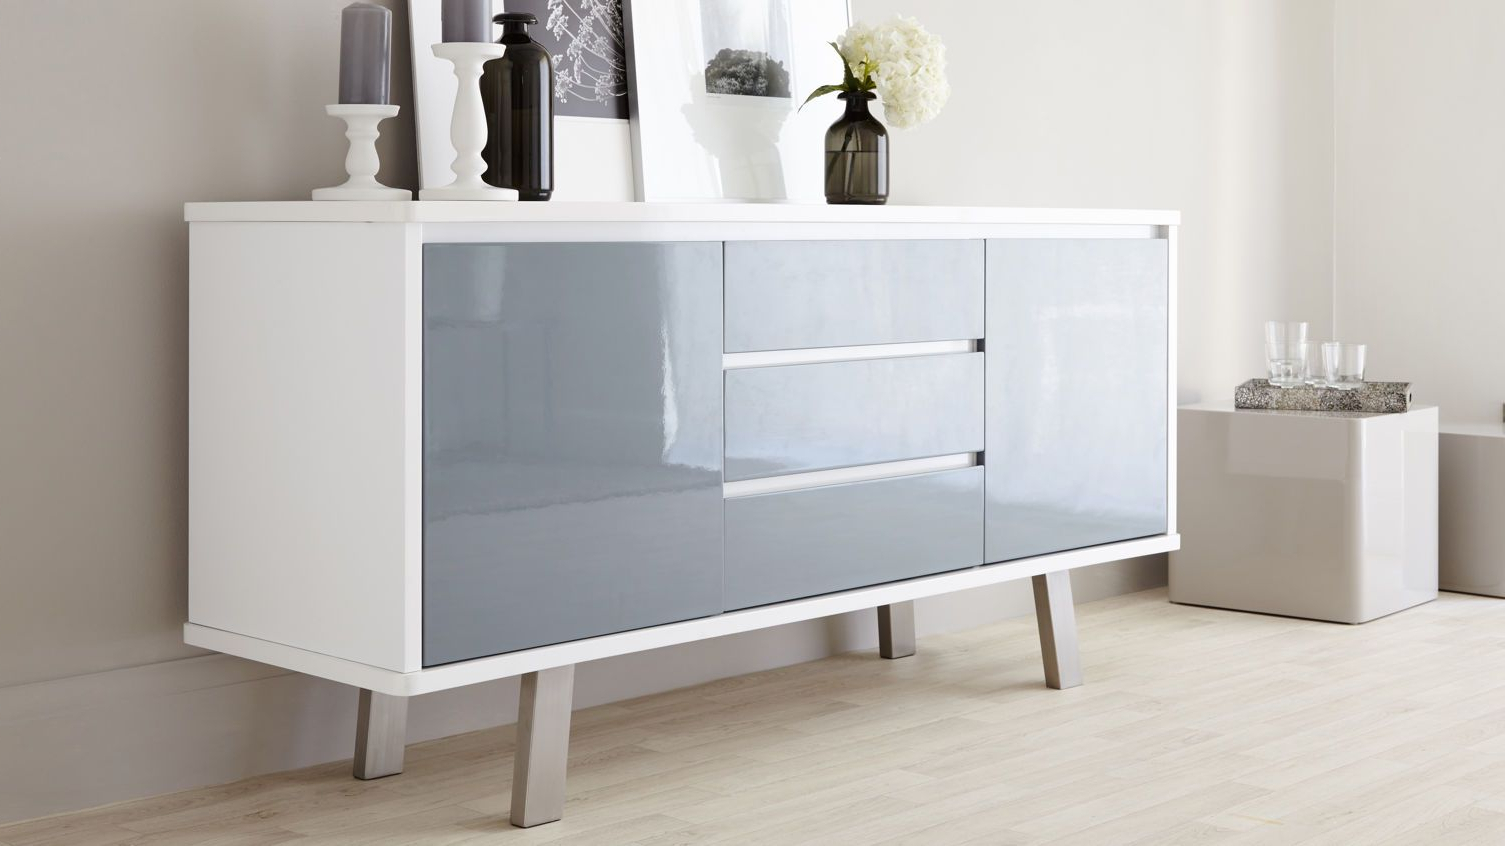 Assi White And Grey Gloss Sideboard | Danetti | Stylish For Deep Blue Fern Credenzas (View 16 of 20)